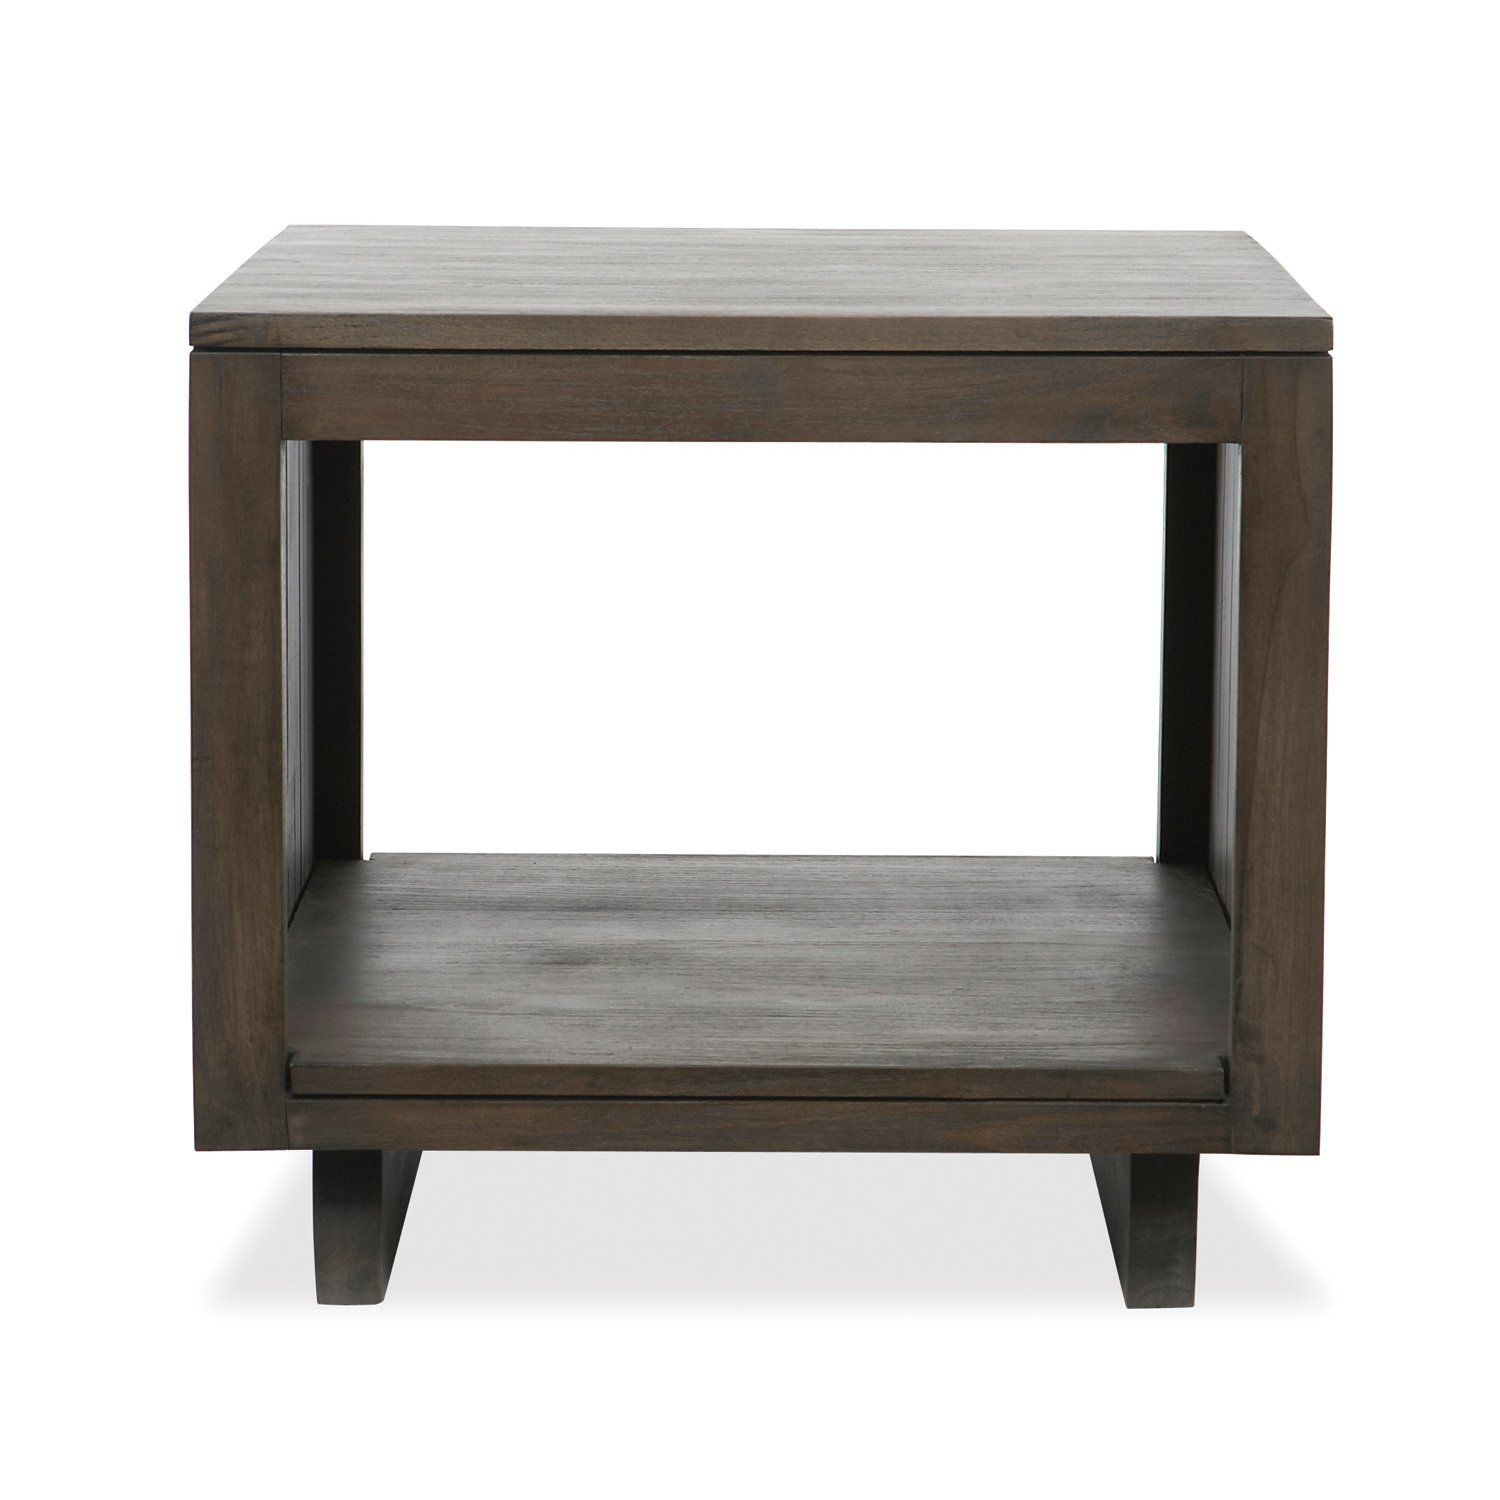 Messina End Table Furniture Furniture Side Tables End Tables [ 1500 x 1500 Pixel ]